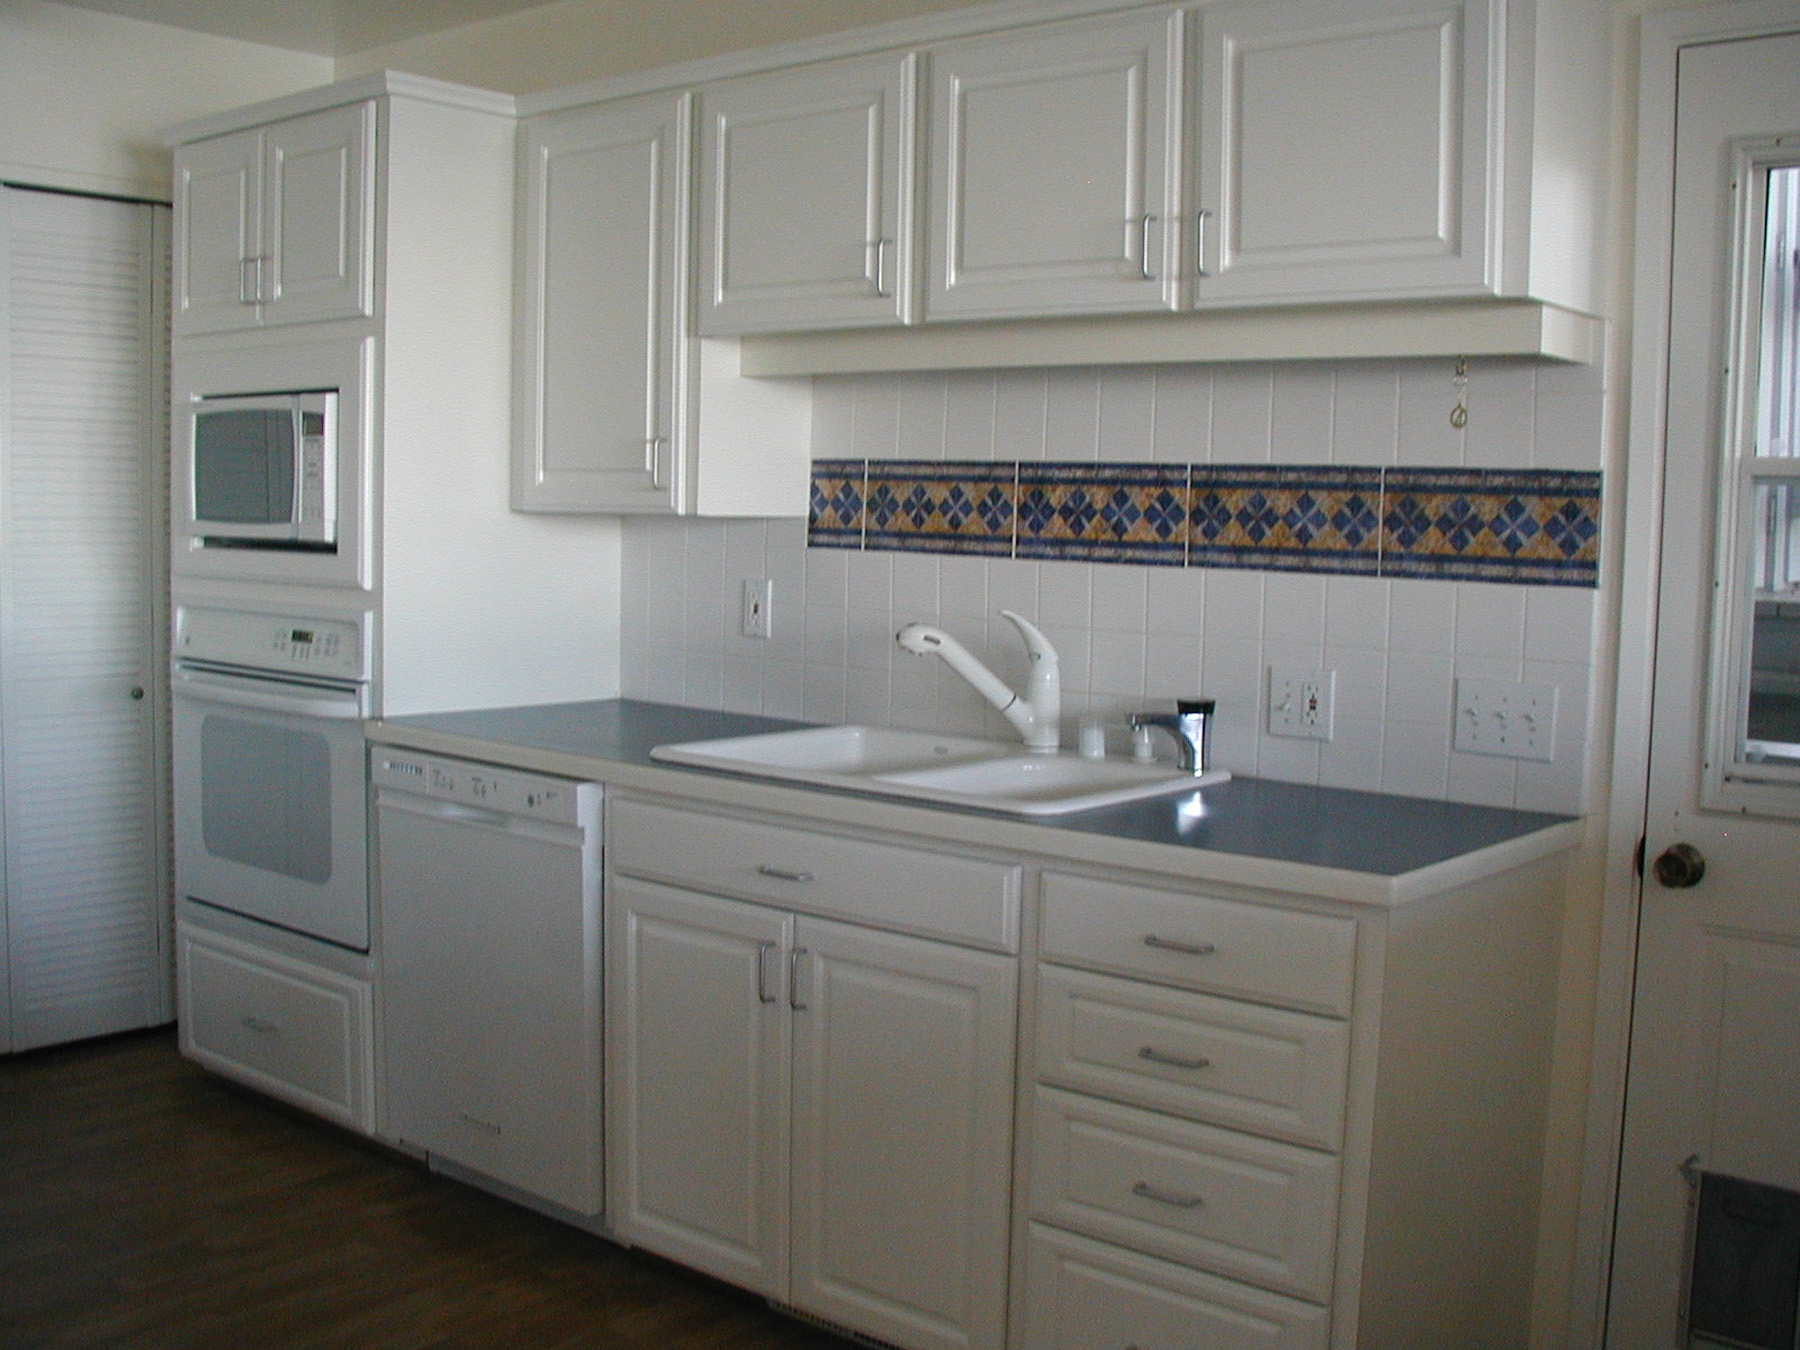 Kitchen Design And Tiles Include Decorative Tile In Your Kitchen Or Bath Design Rose